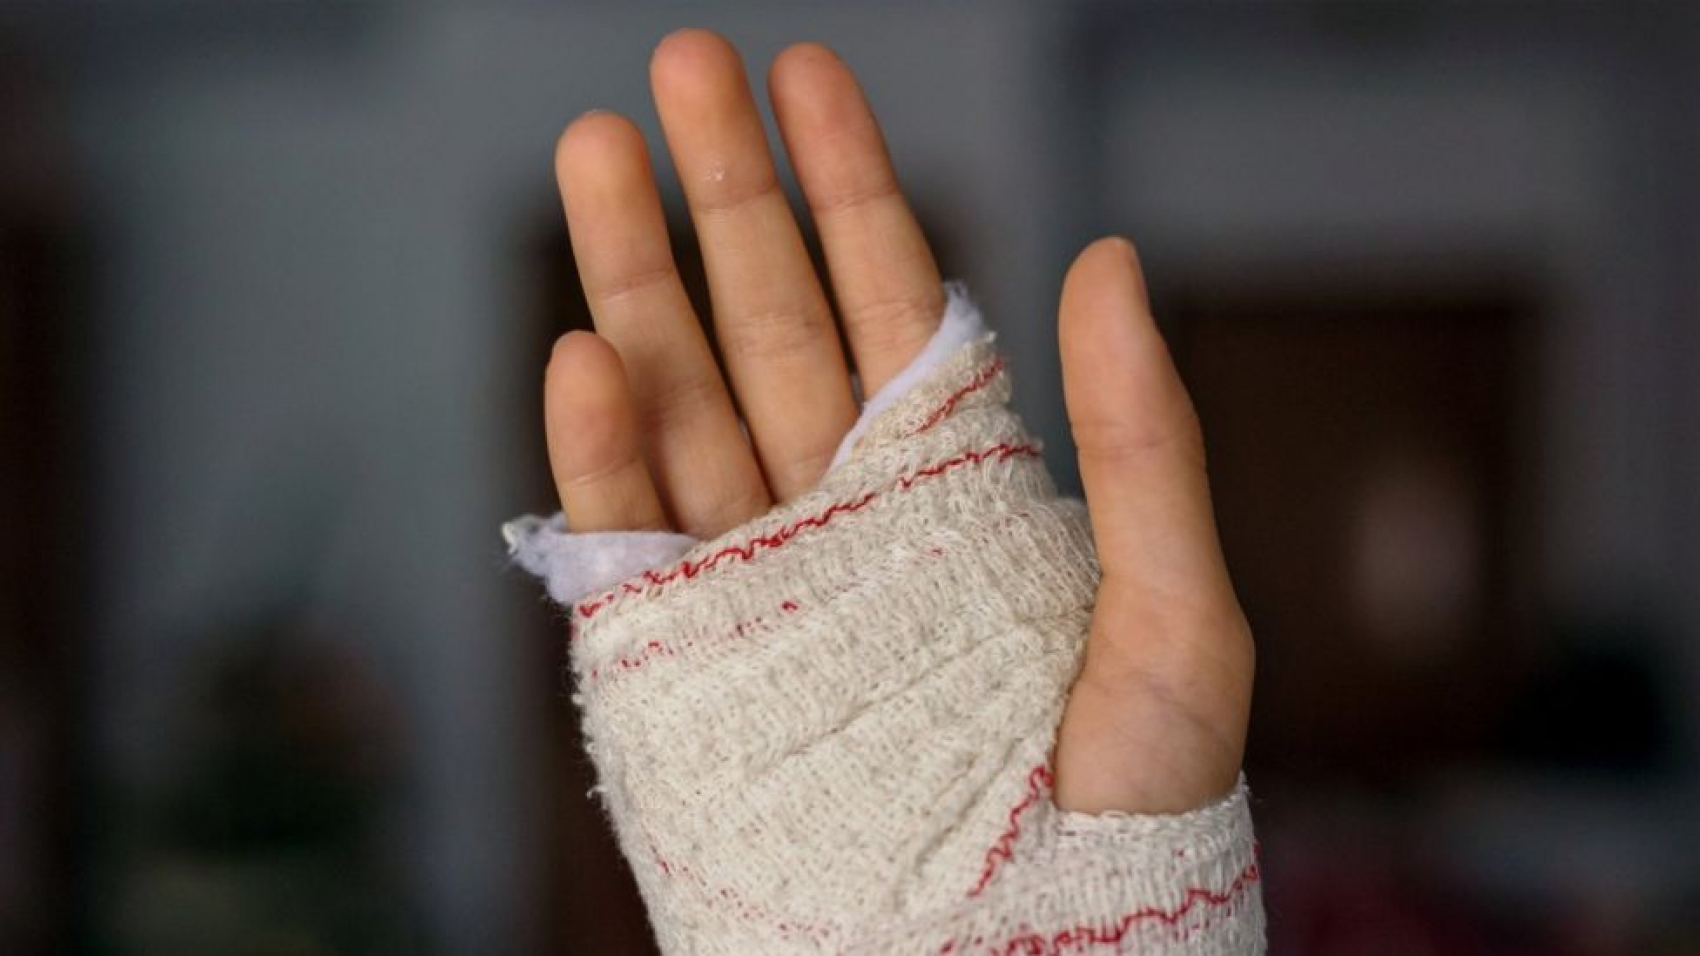 _116766870_gettyimages-hand